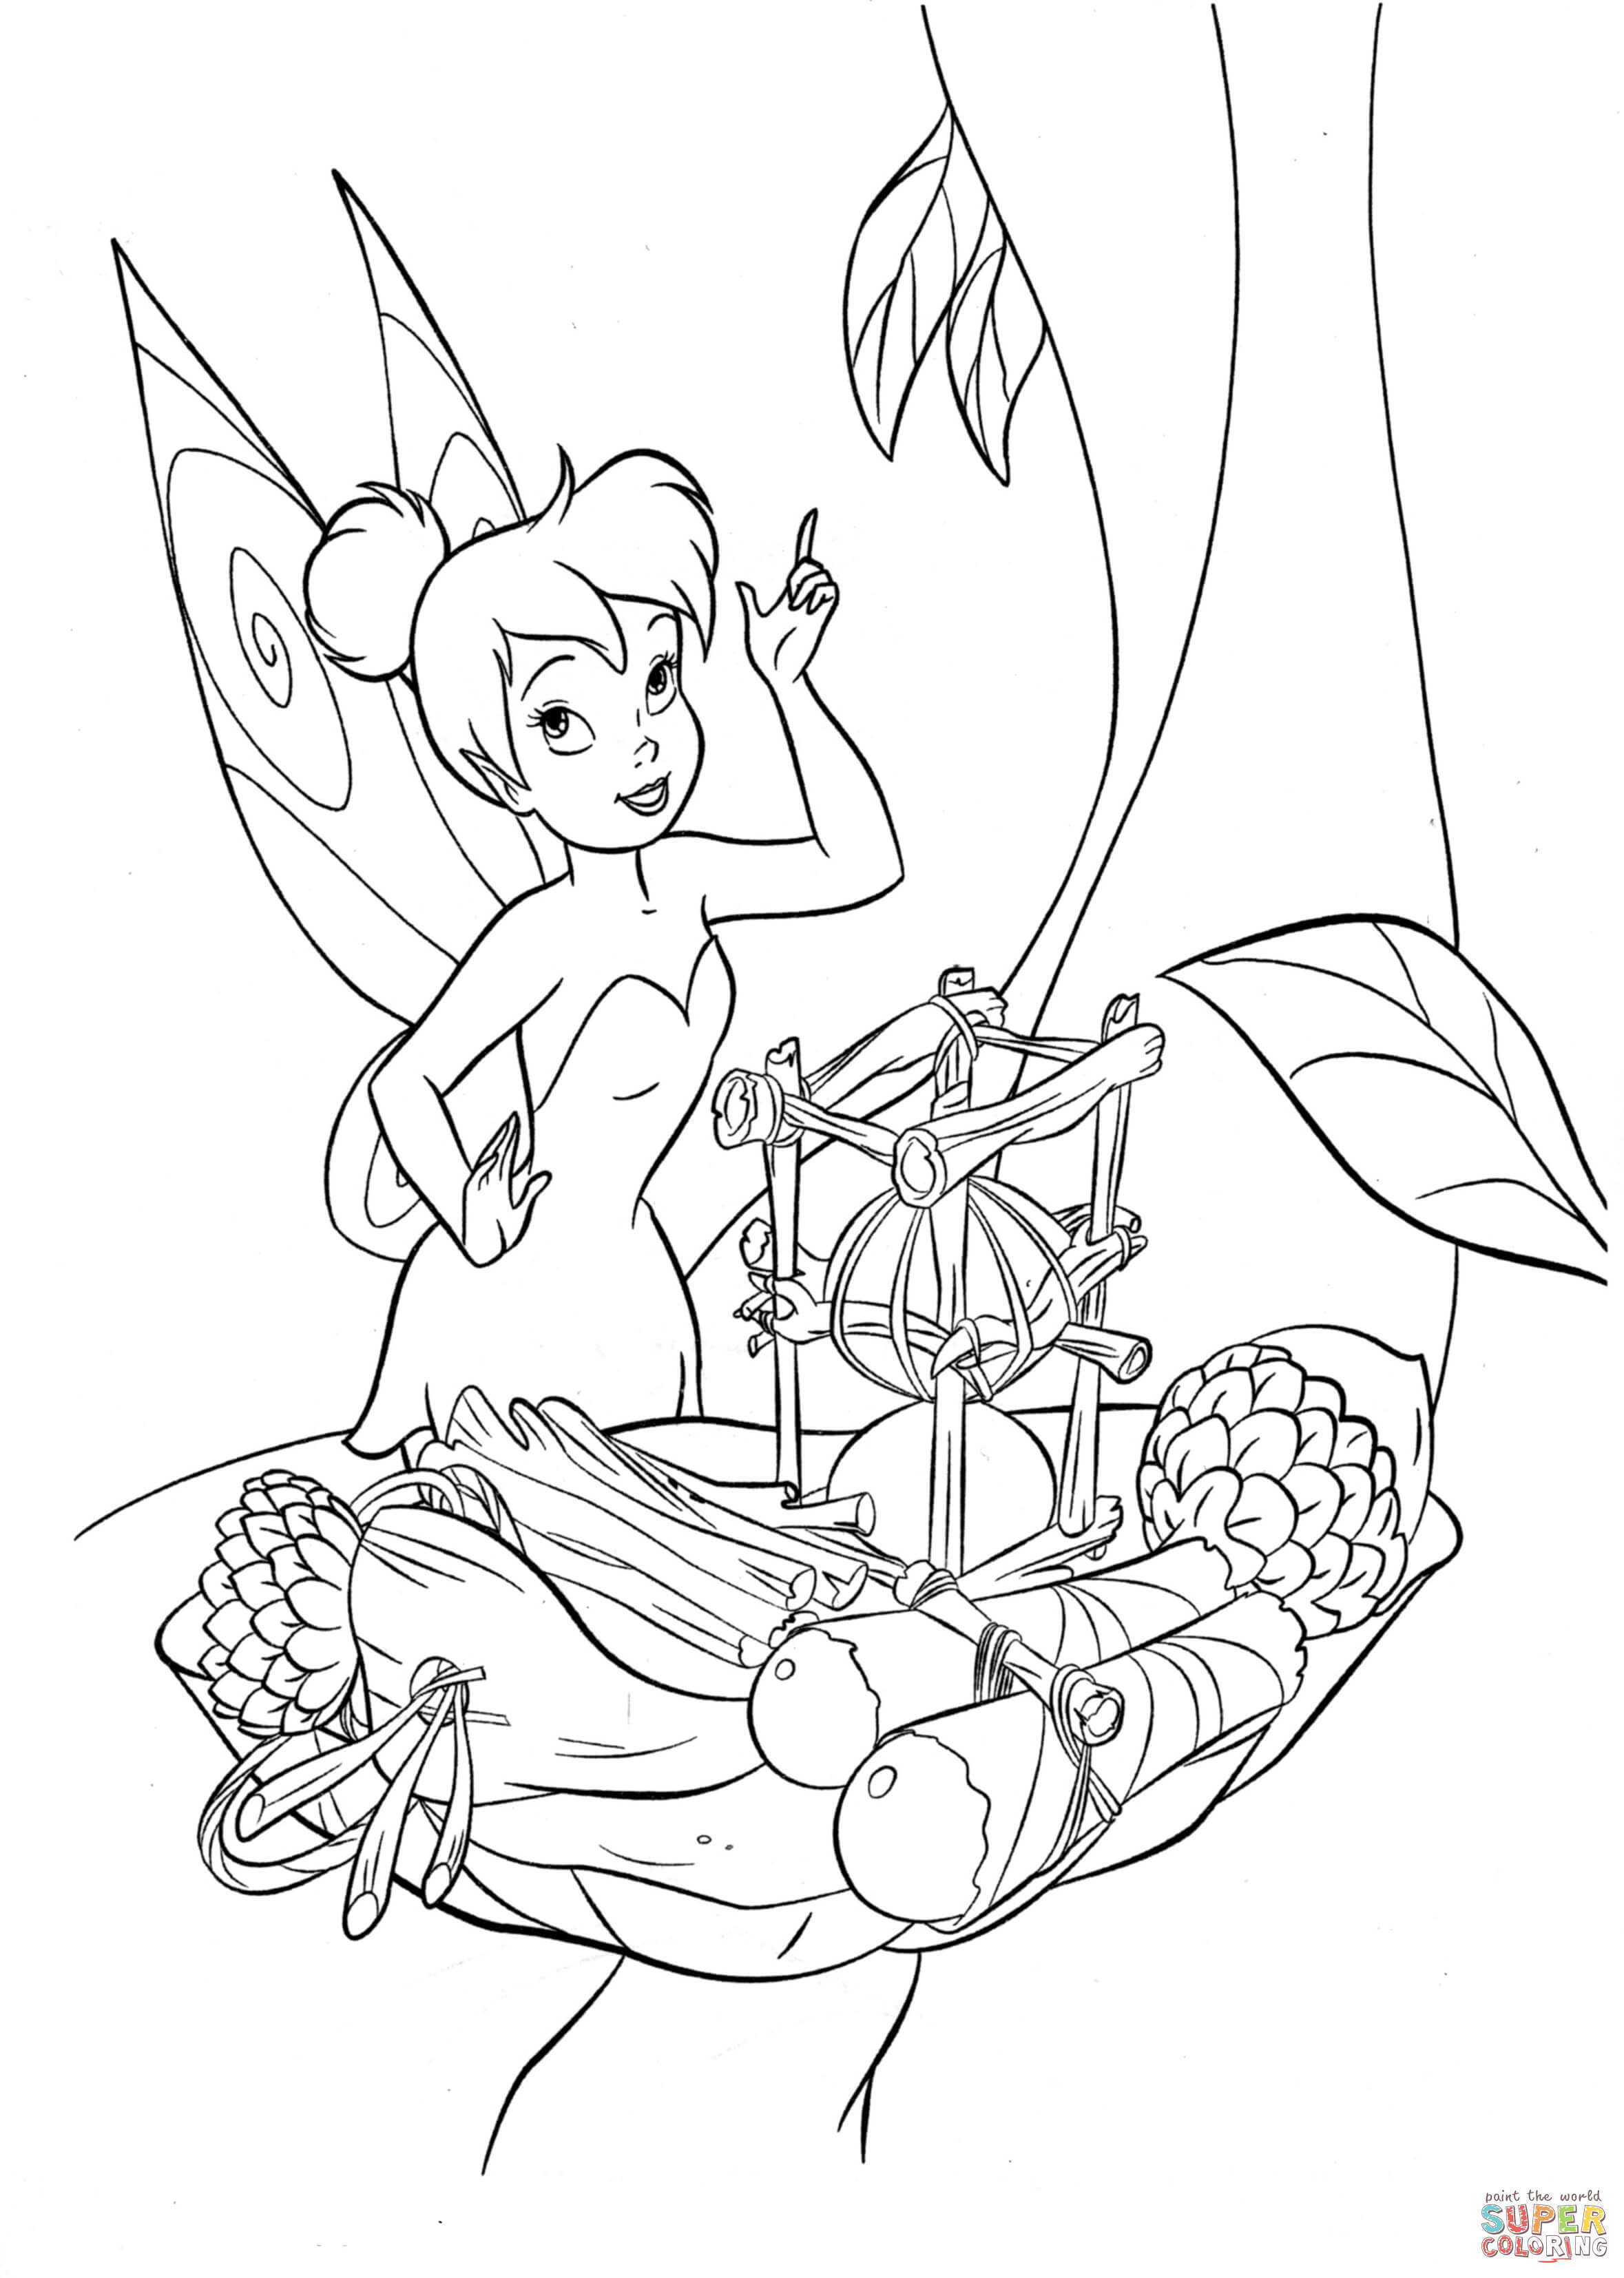 coloring tinkerbell cartoon tinkerball coloring pages at getdrawings free download cartoon tinkerbell coloring